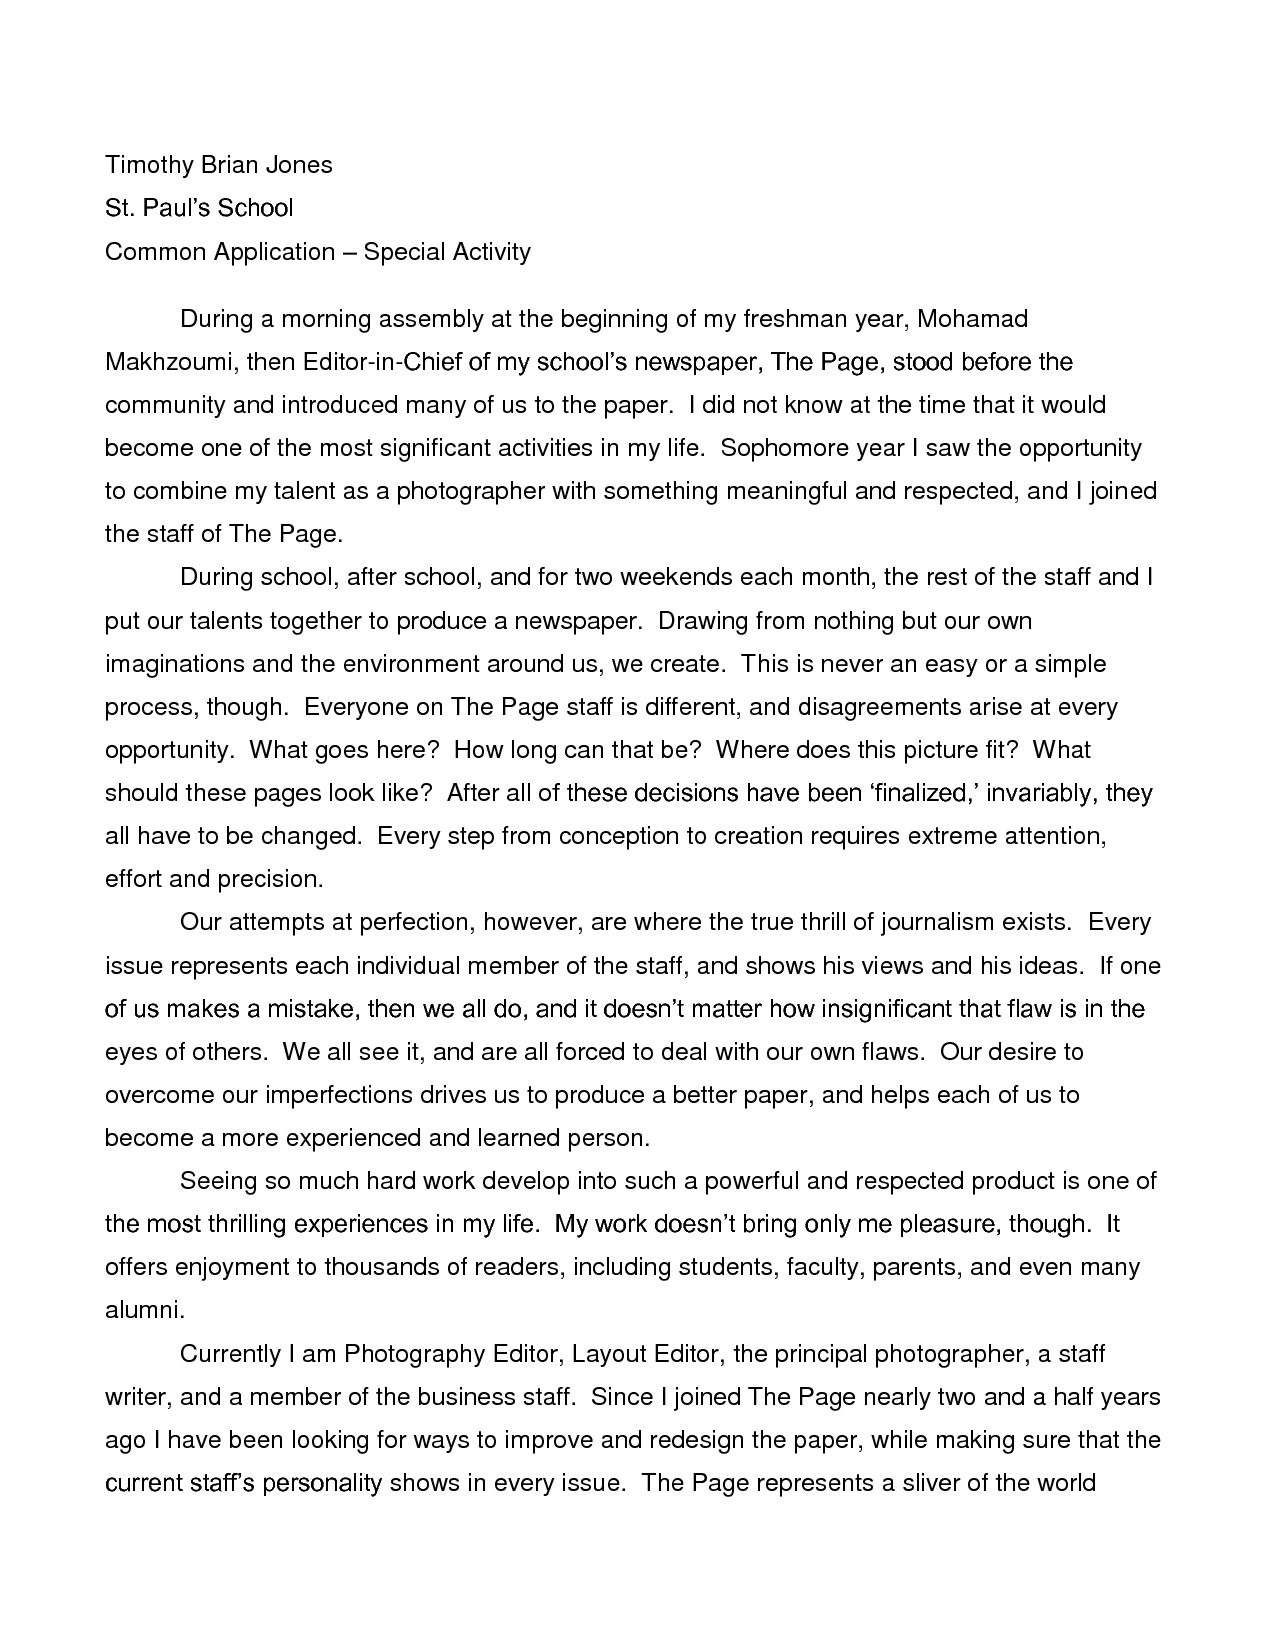 006 Persuasive Essays Proper Format For Essay Coursework Help Qnpaperuplf Examples 5th Grade Of High School Personal Narrative Intended Argumentati Middle Pdf Writing About Love Incredible Topics Schoolers Ready Full